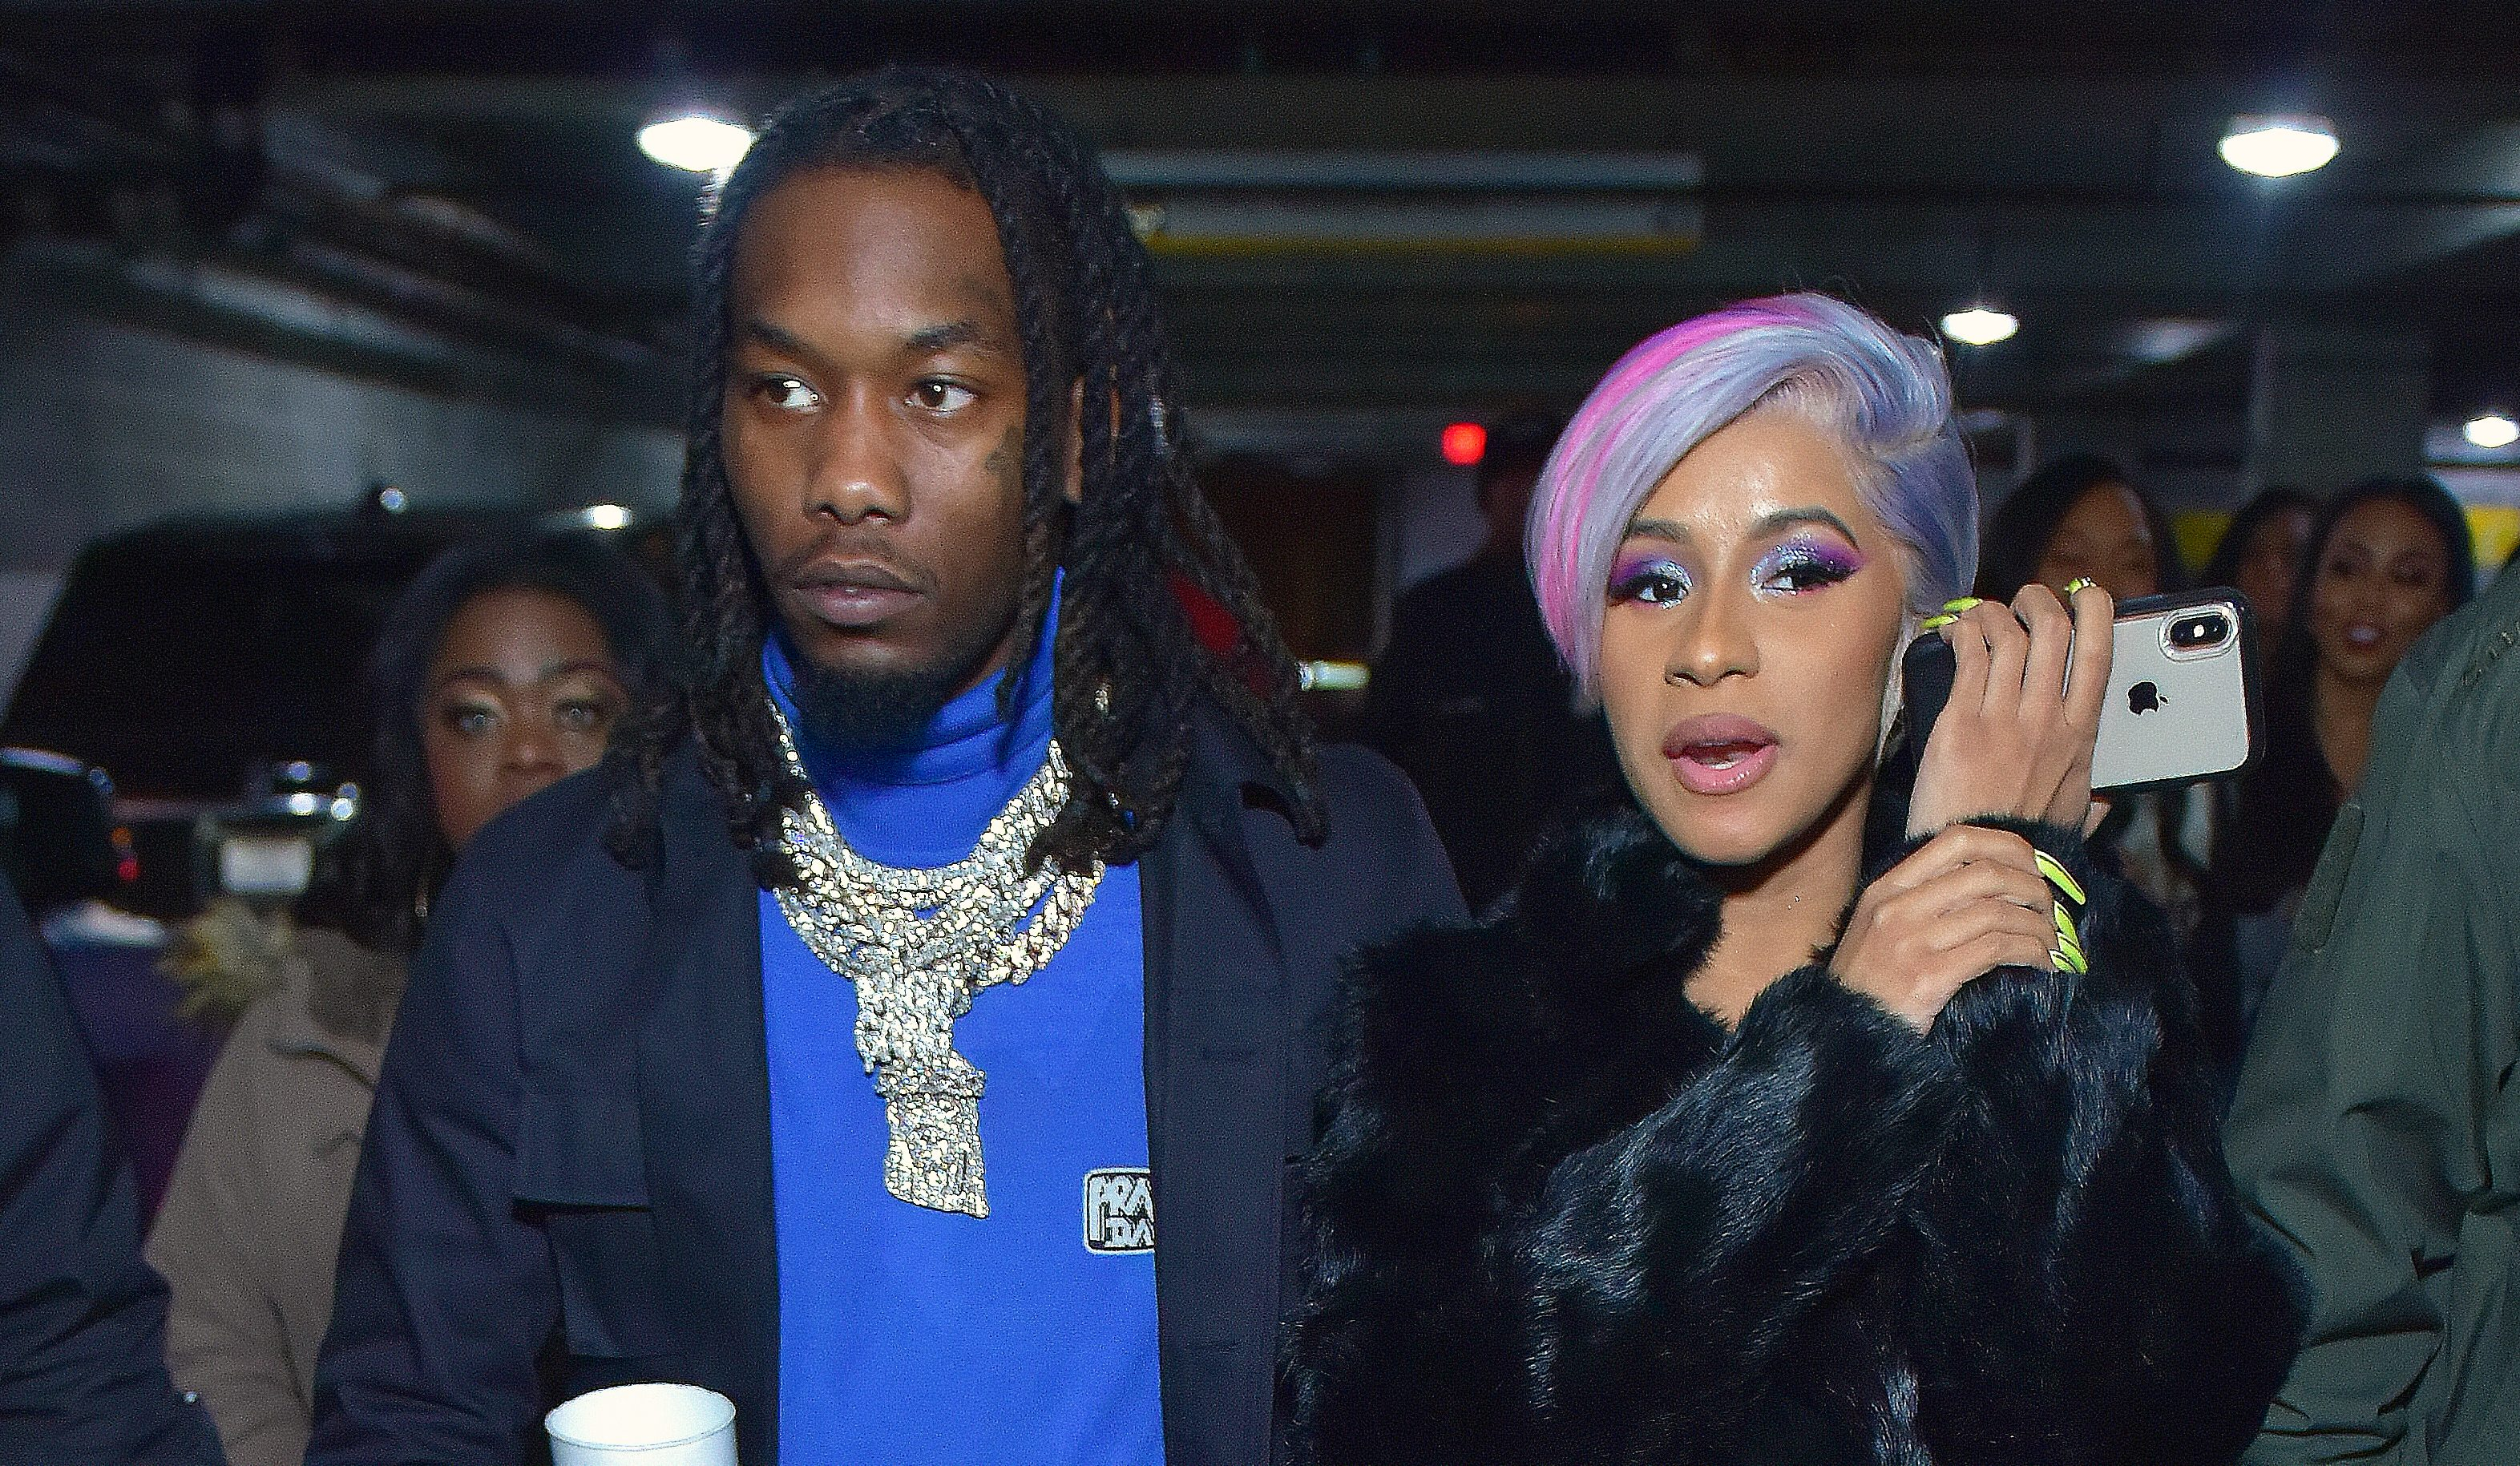 Cardi B and Offset push marriage woes aside as they party together ahead of Super Bowl